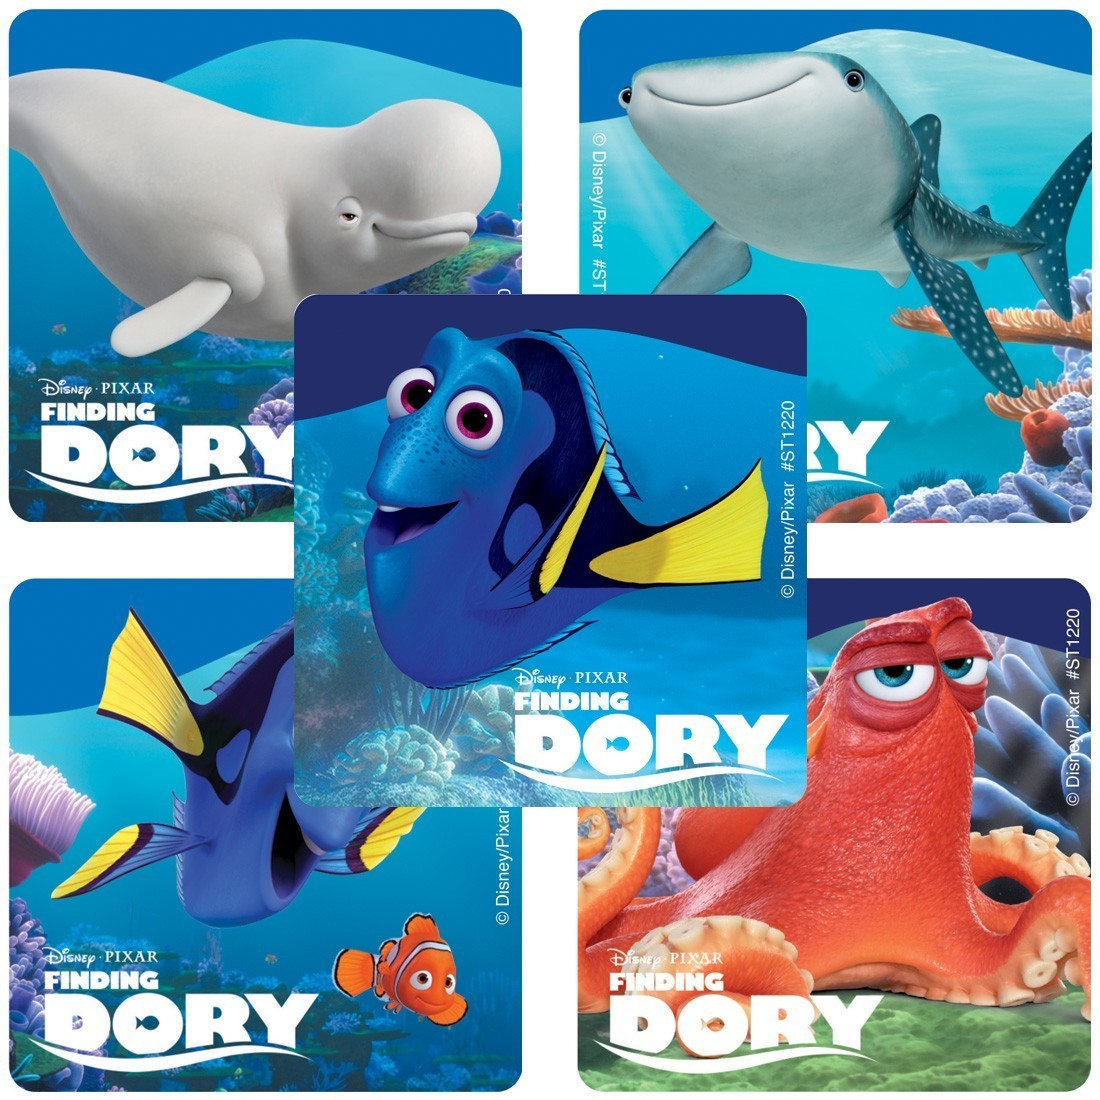 Finding Dory Character Stickers  [image]